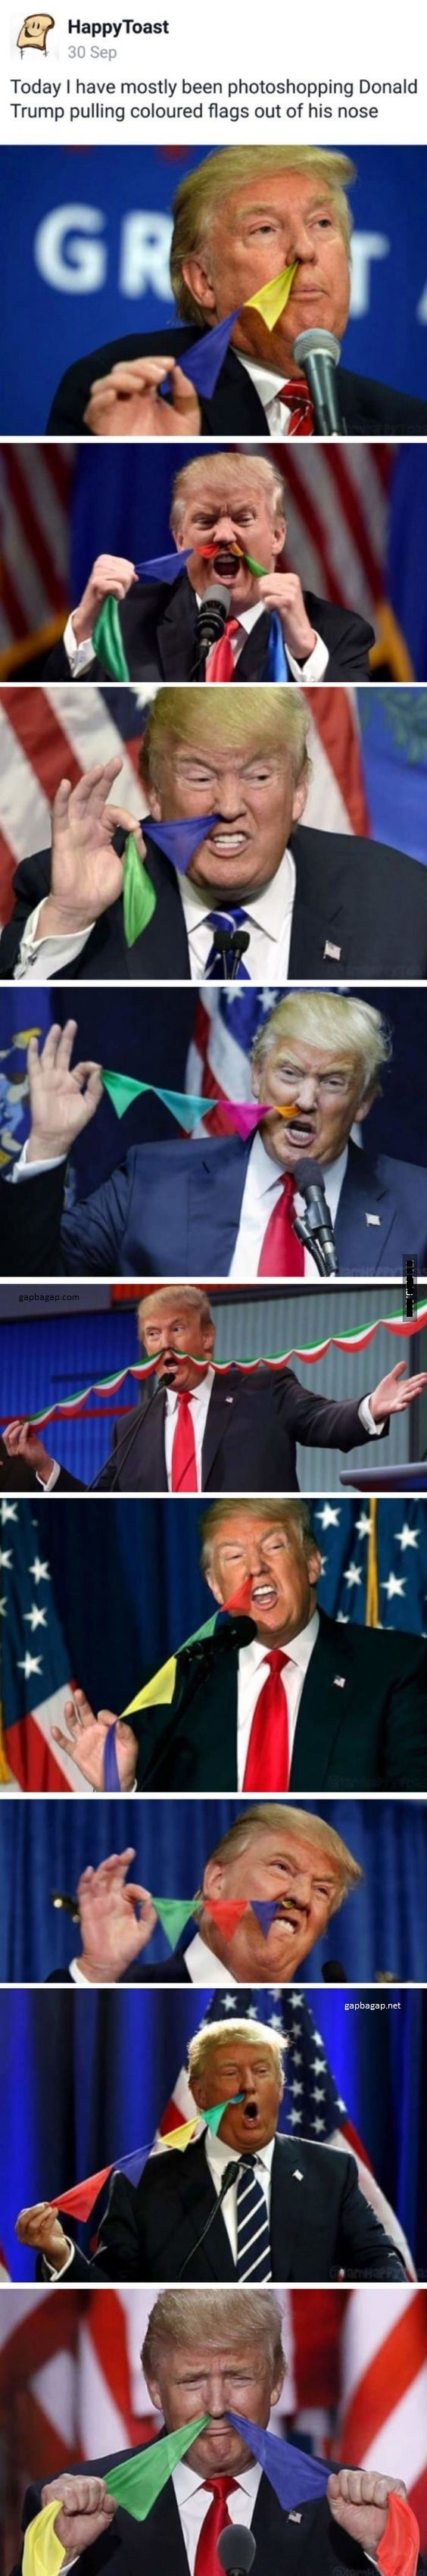 Funny Pictures Of Donald Trump vs. Flags